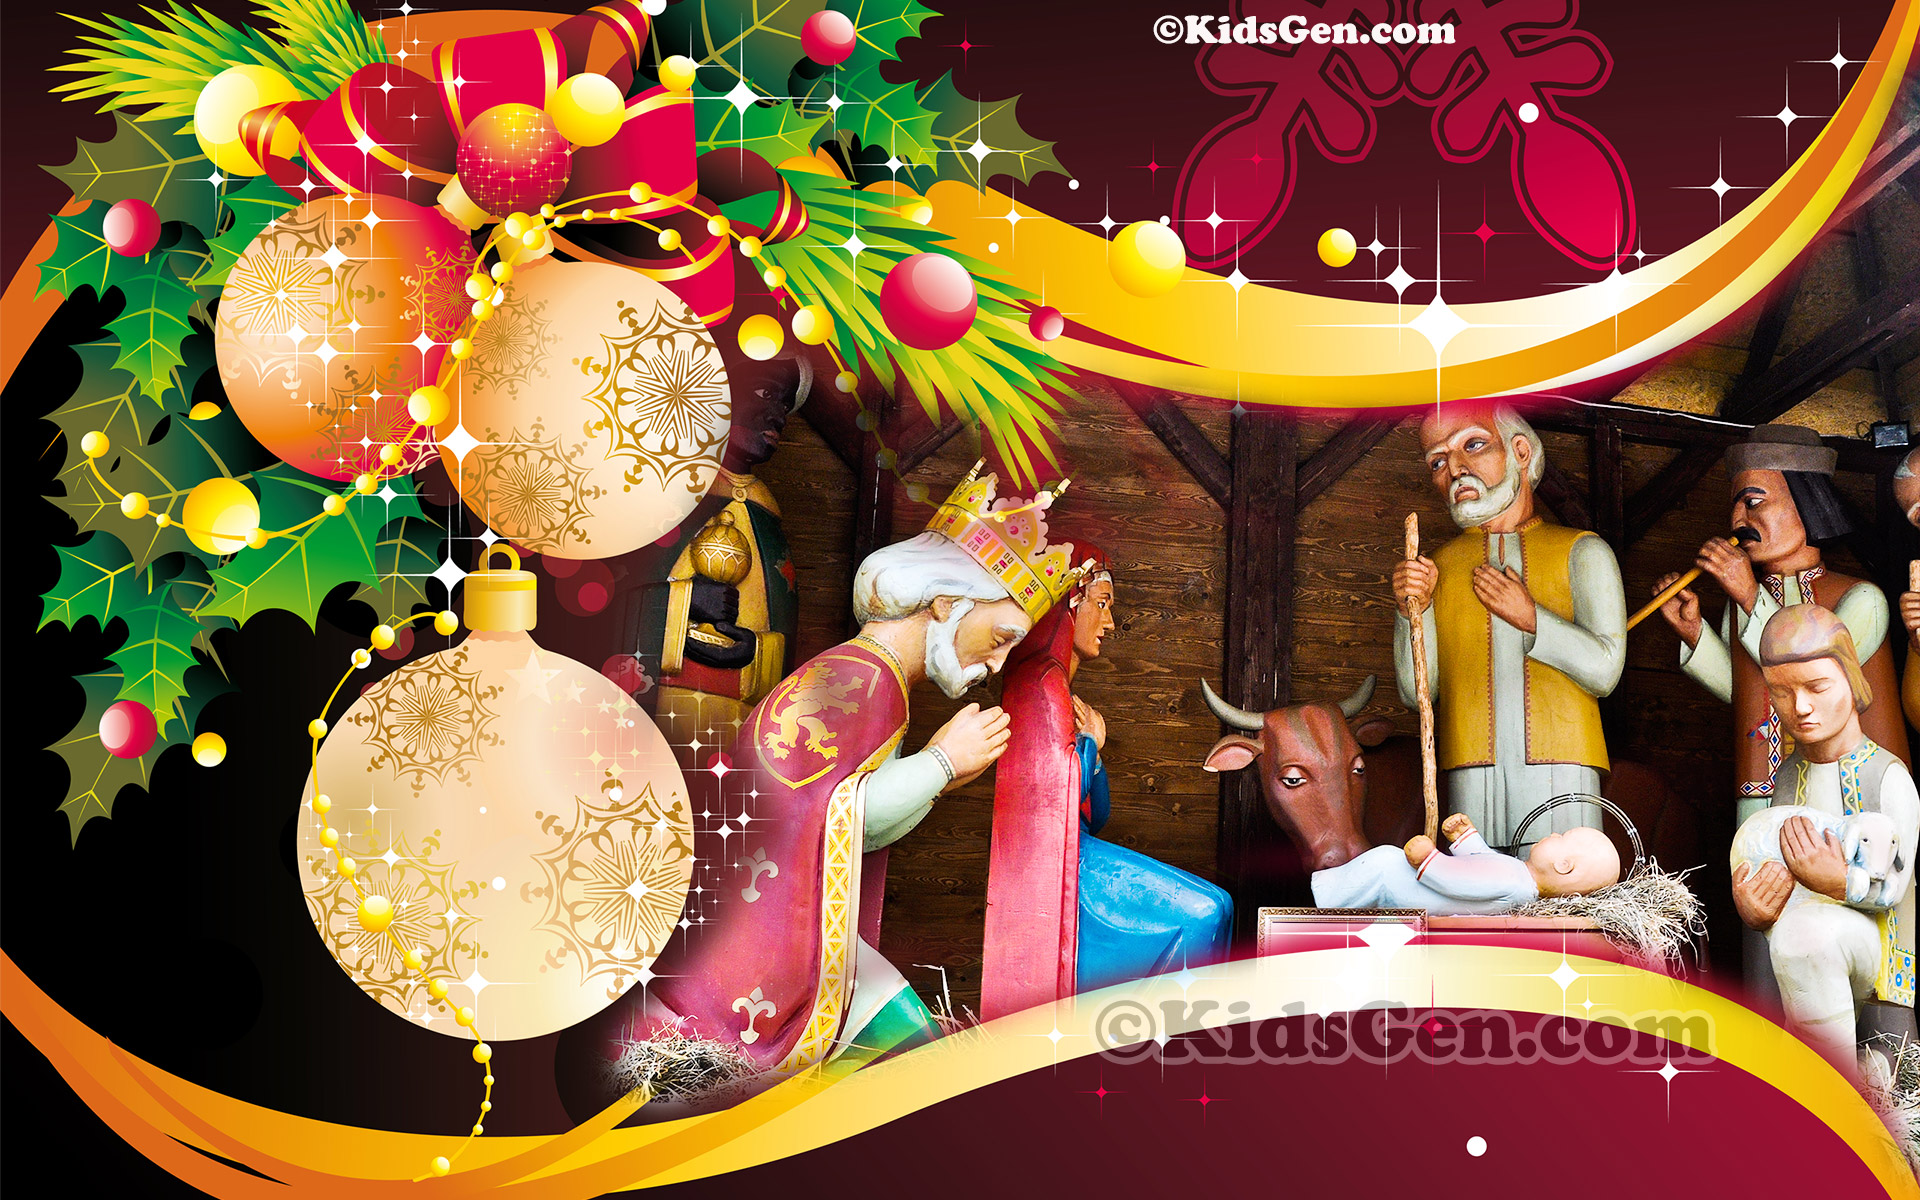 A Wonderful High Definition Wallpaper Of Christmas Decoration Featuring Birth Jesus Christ